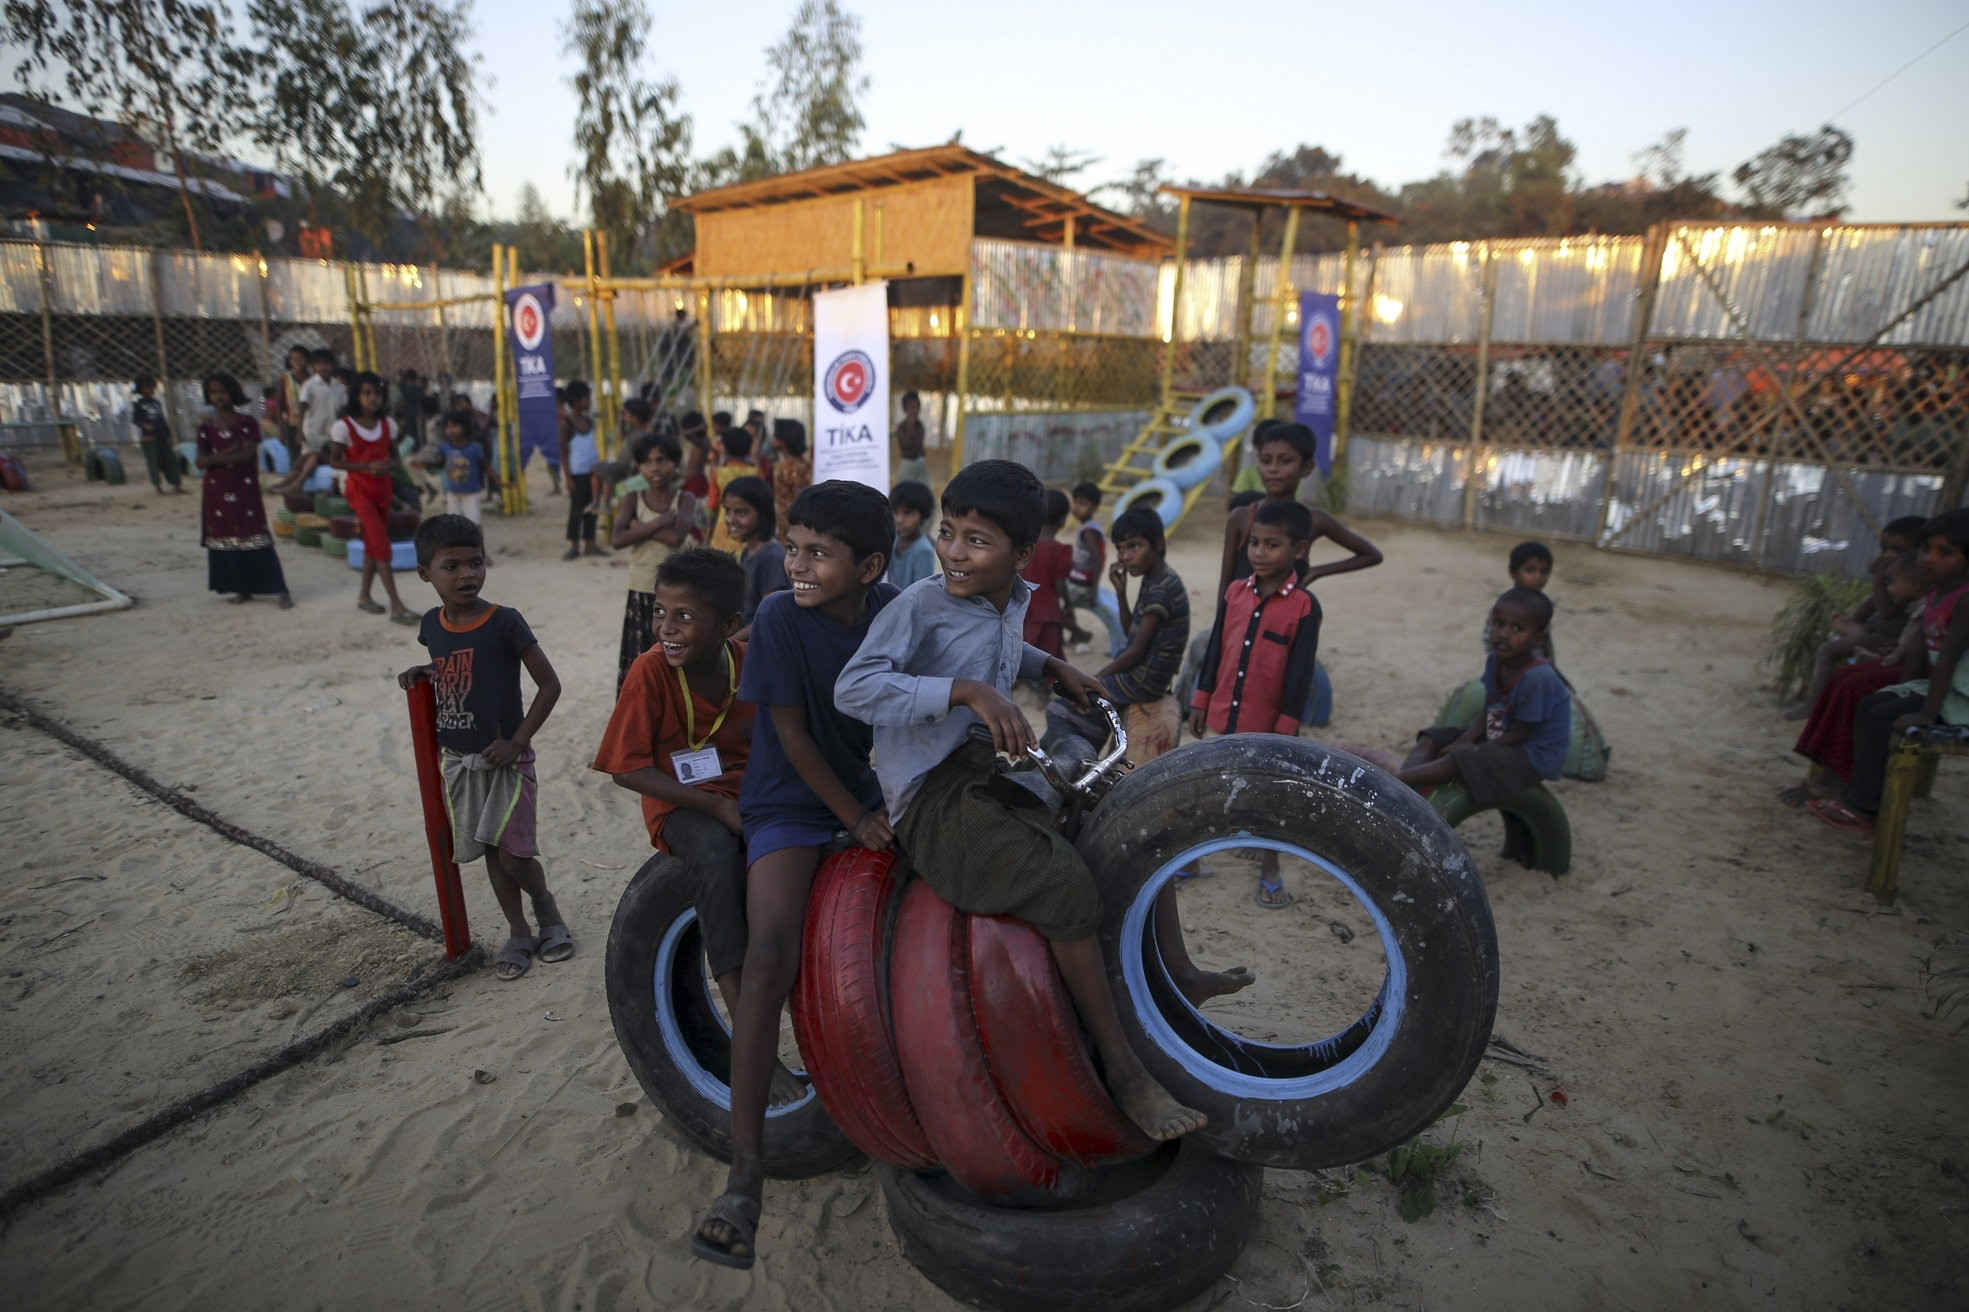 Children of Rohingya refugees in Bangladesh play in a playground furnished by Tu0130KA.